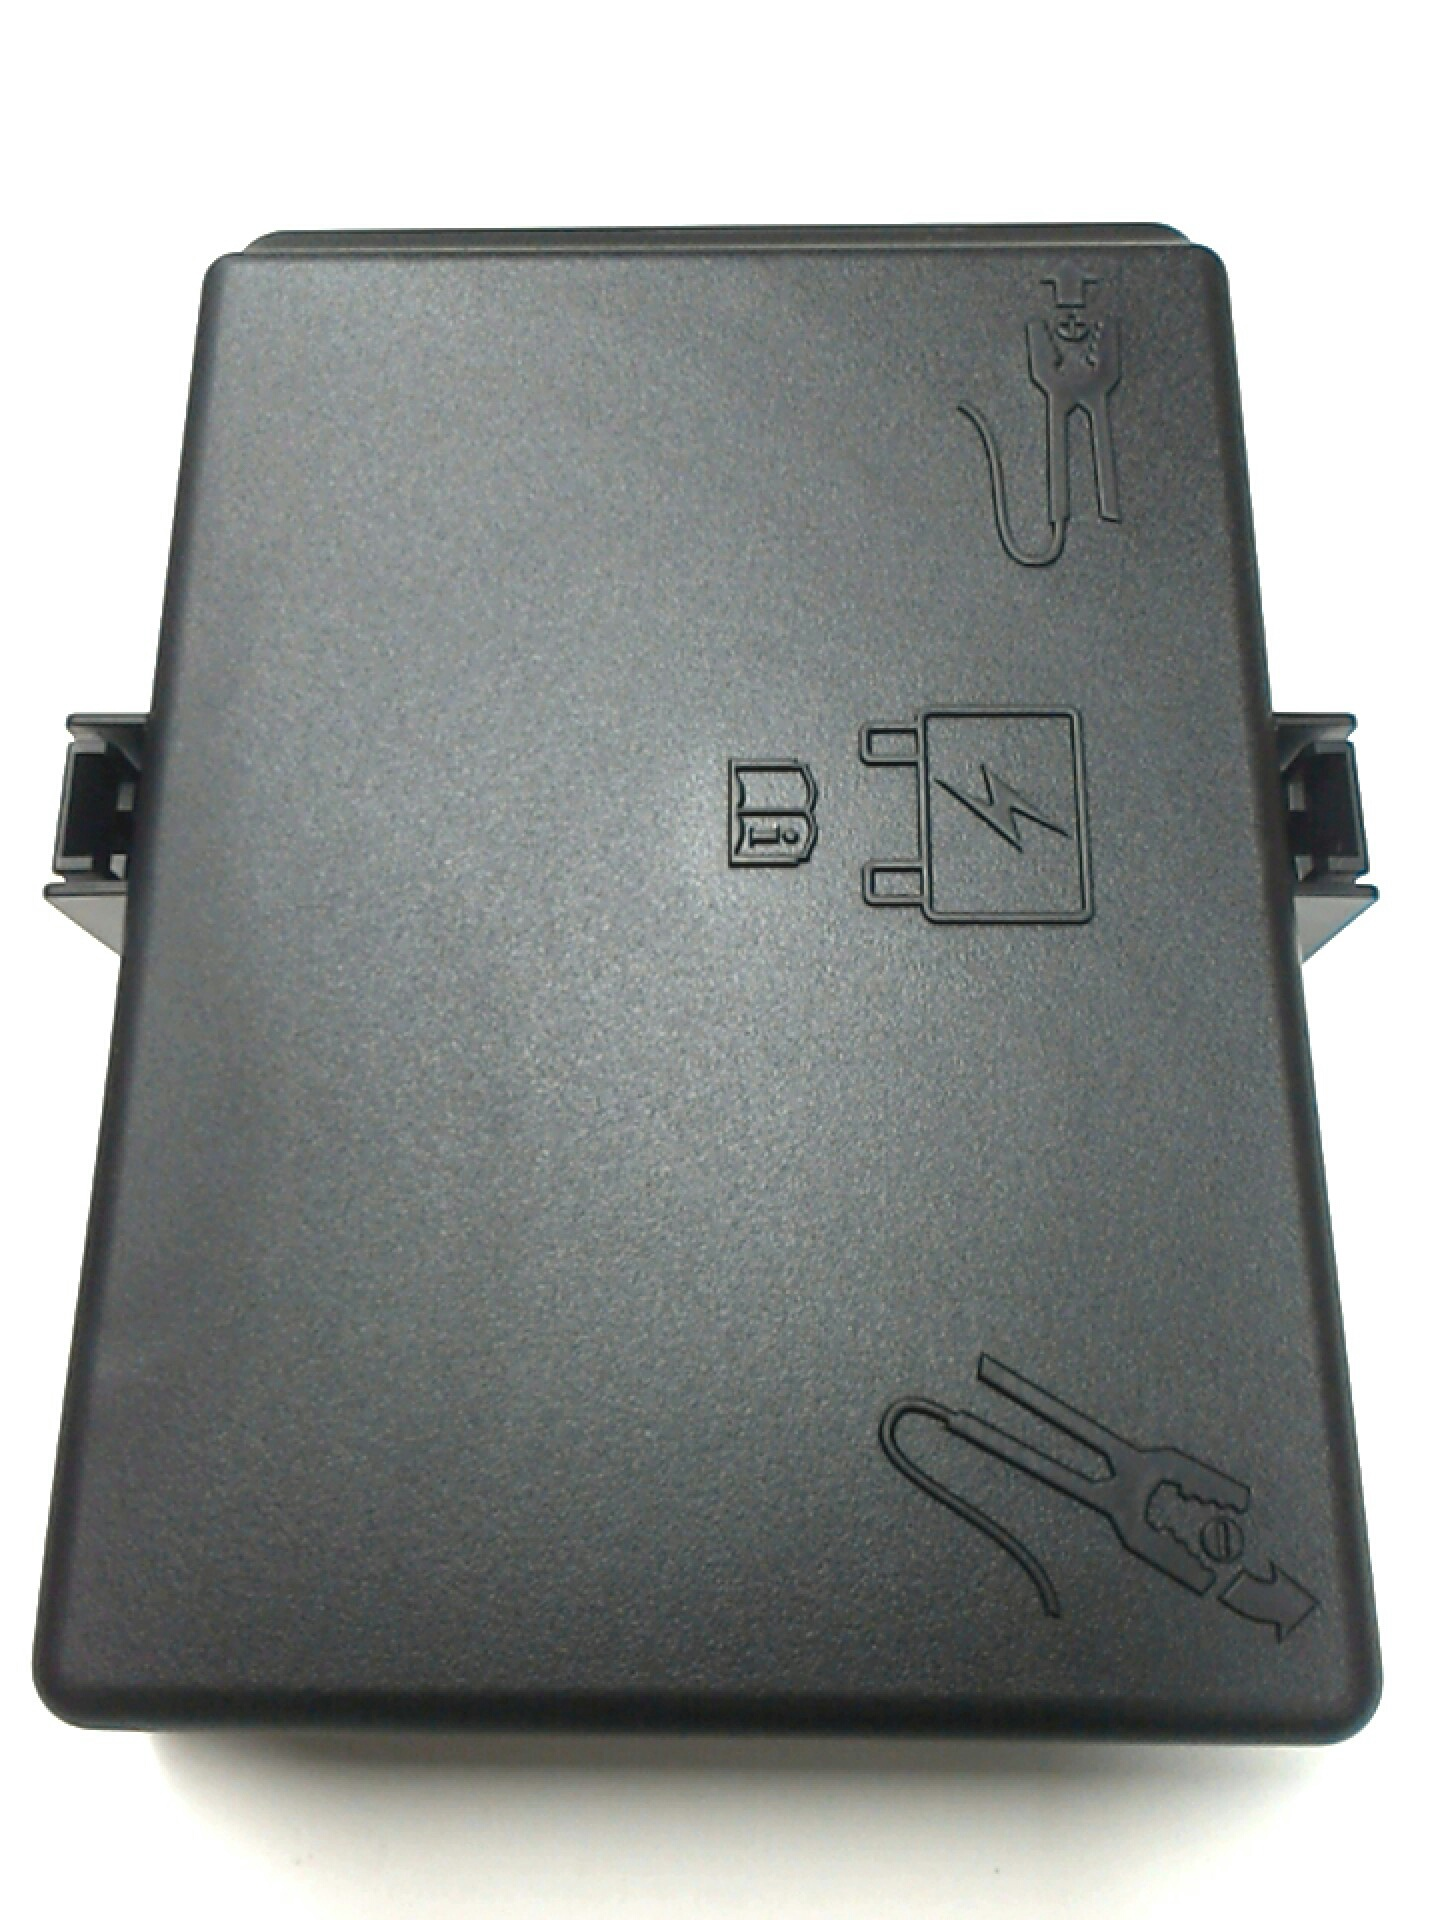 2011 chrysler 300 cover totally integrated power module. Black Bedroom Furniture Sets. Home Design Ideas